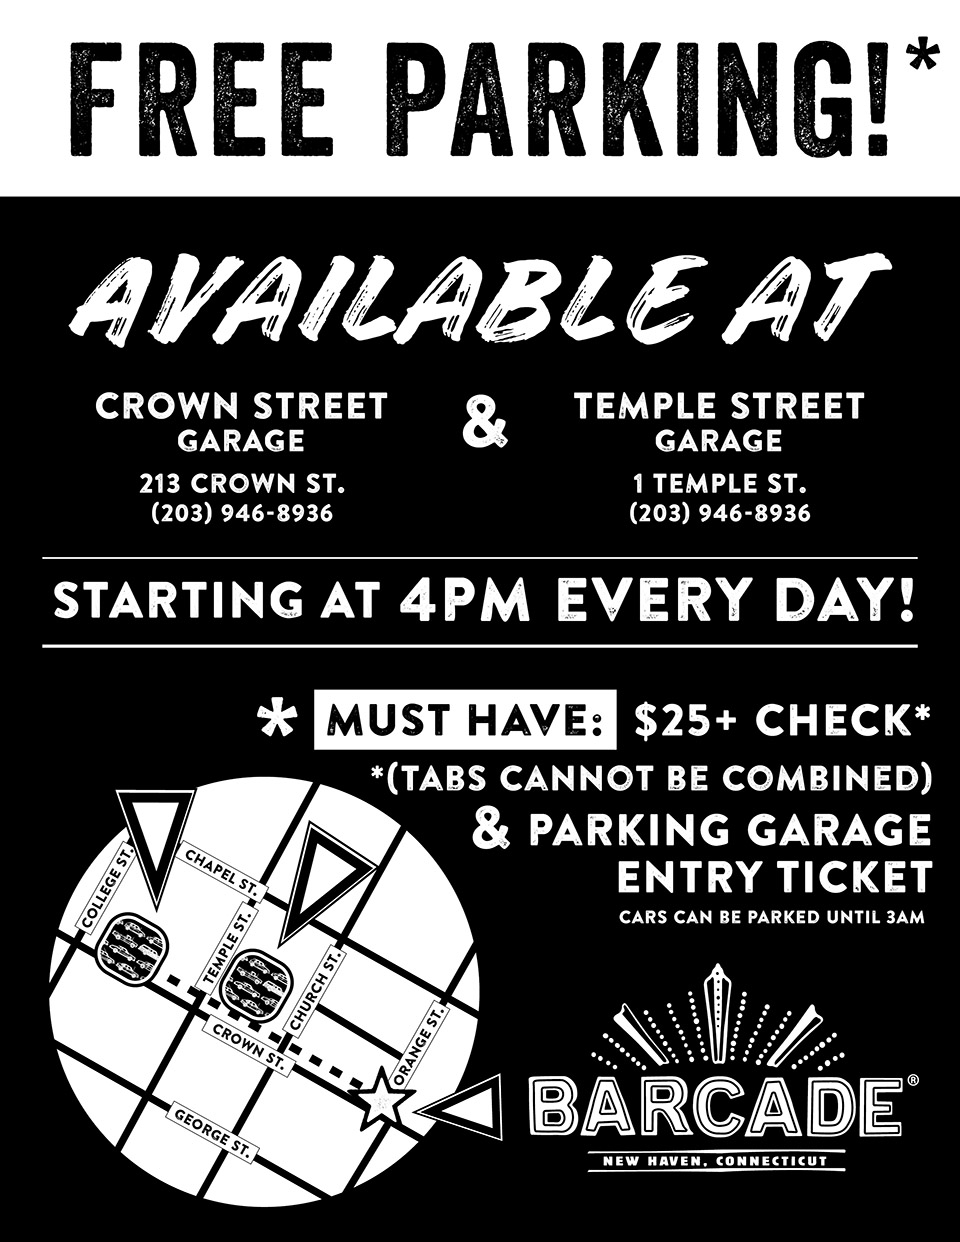 Barcade® New Haven — Parking Validation Info